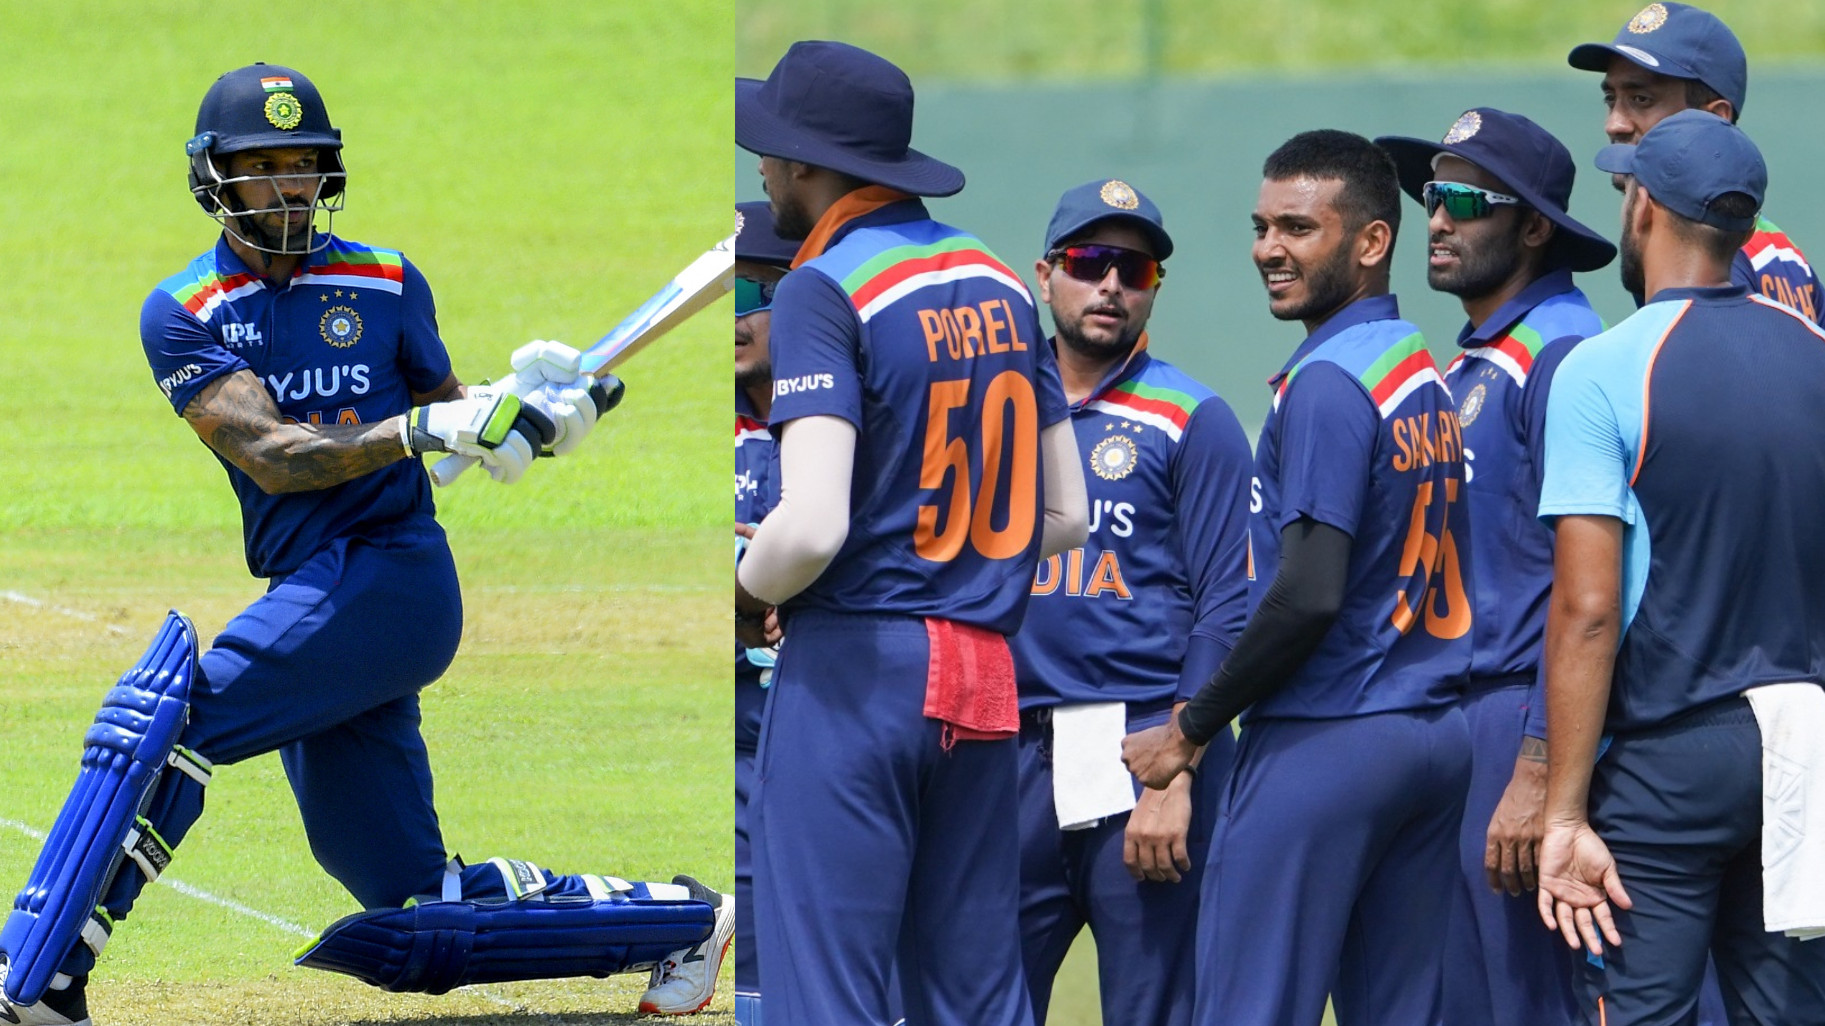 SL v IND 2021: COC Predicted Team India playing XI for the first ODI vs Sri Lanka